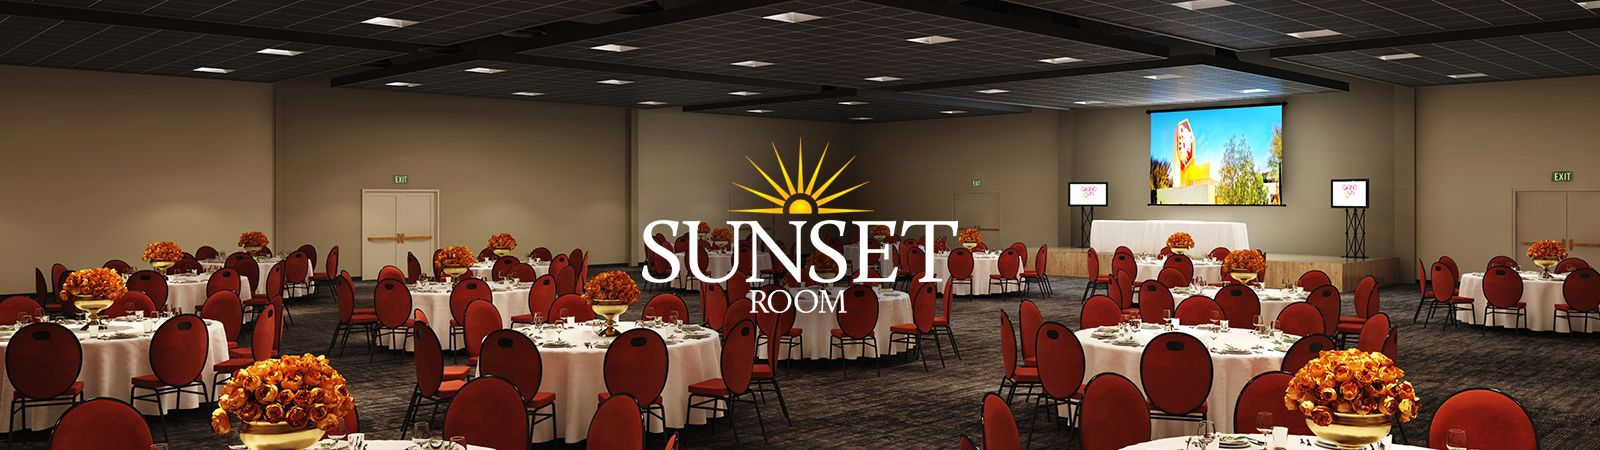 Sunset Room